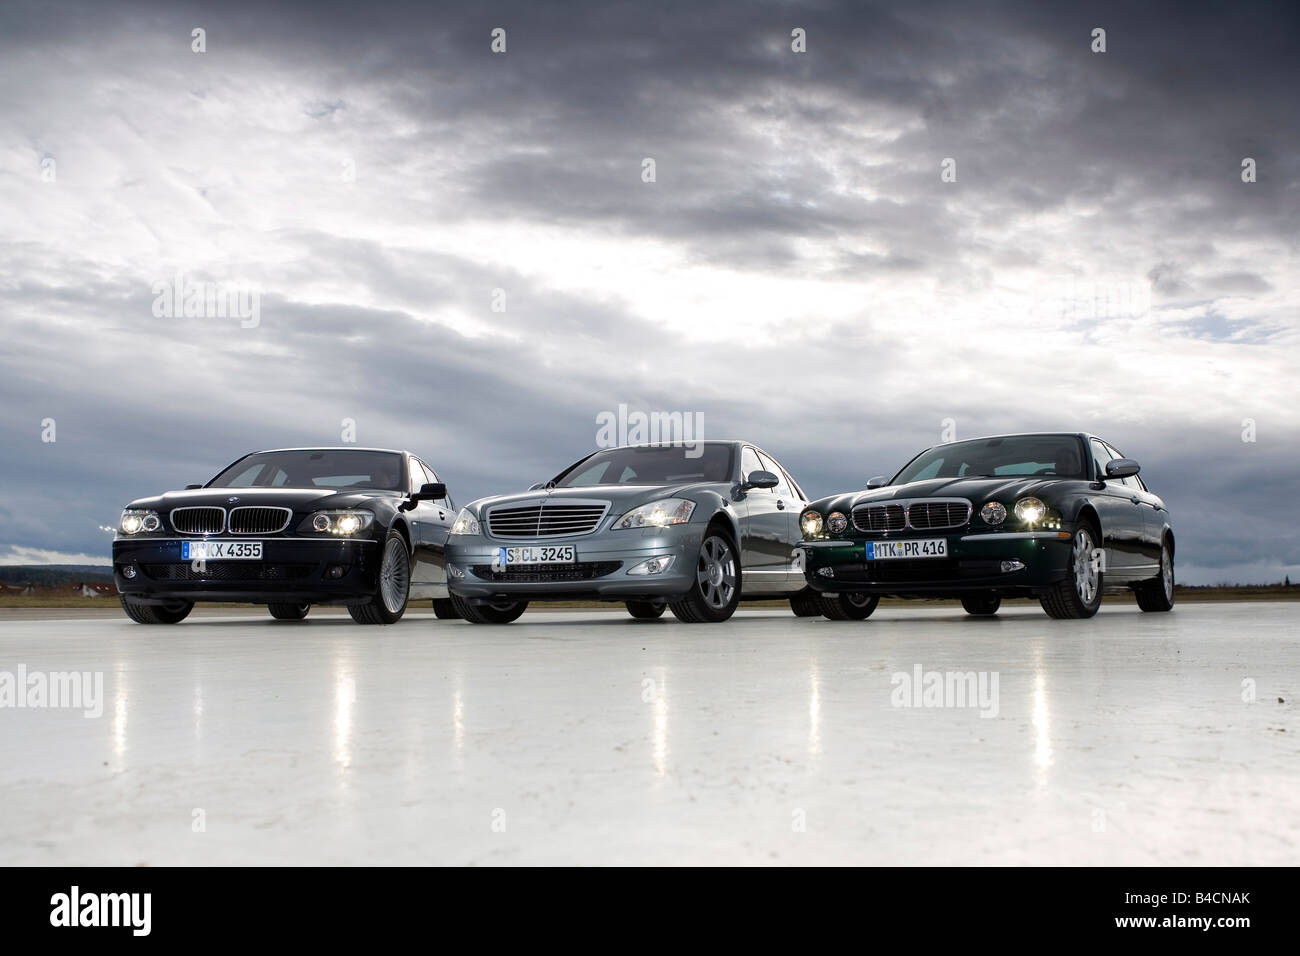 bmw cars stockfotos bmw cars bilder alamy. Black Bedroom Furniture Sets. Home Design Ideas